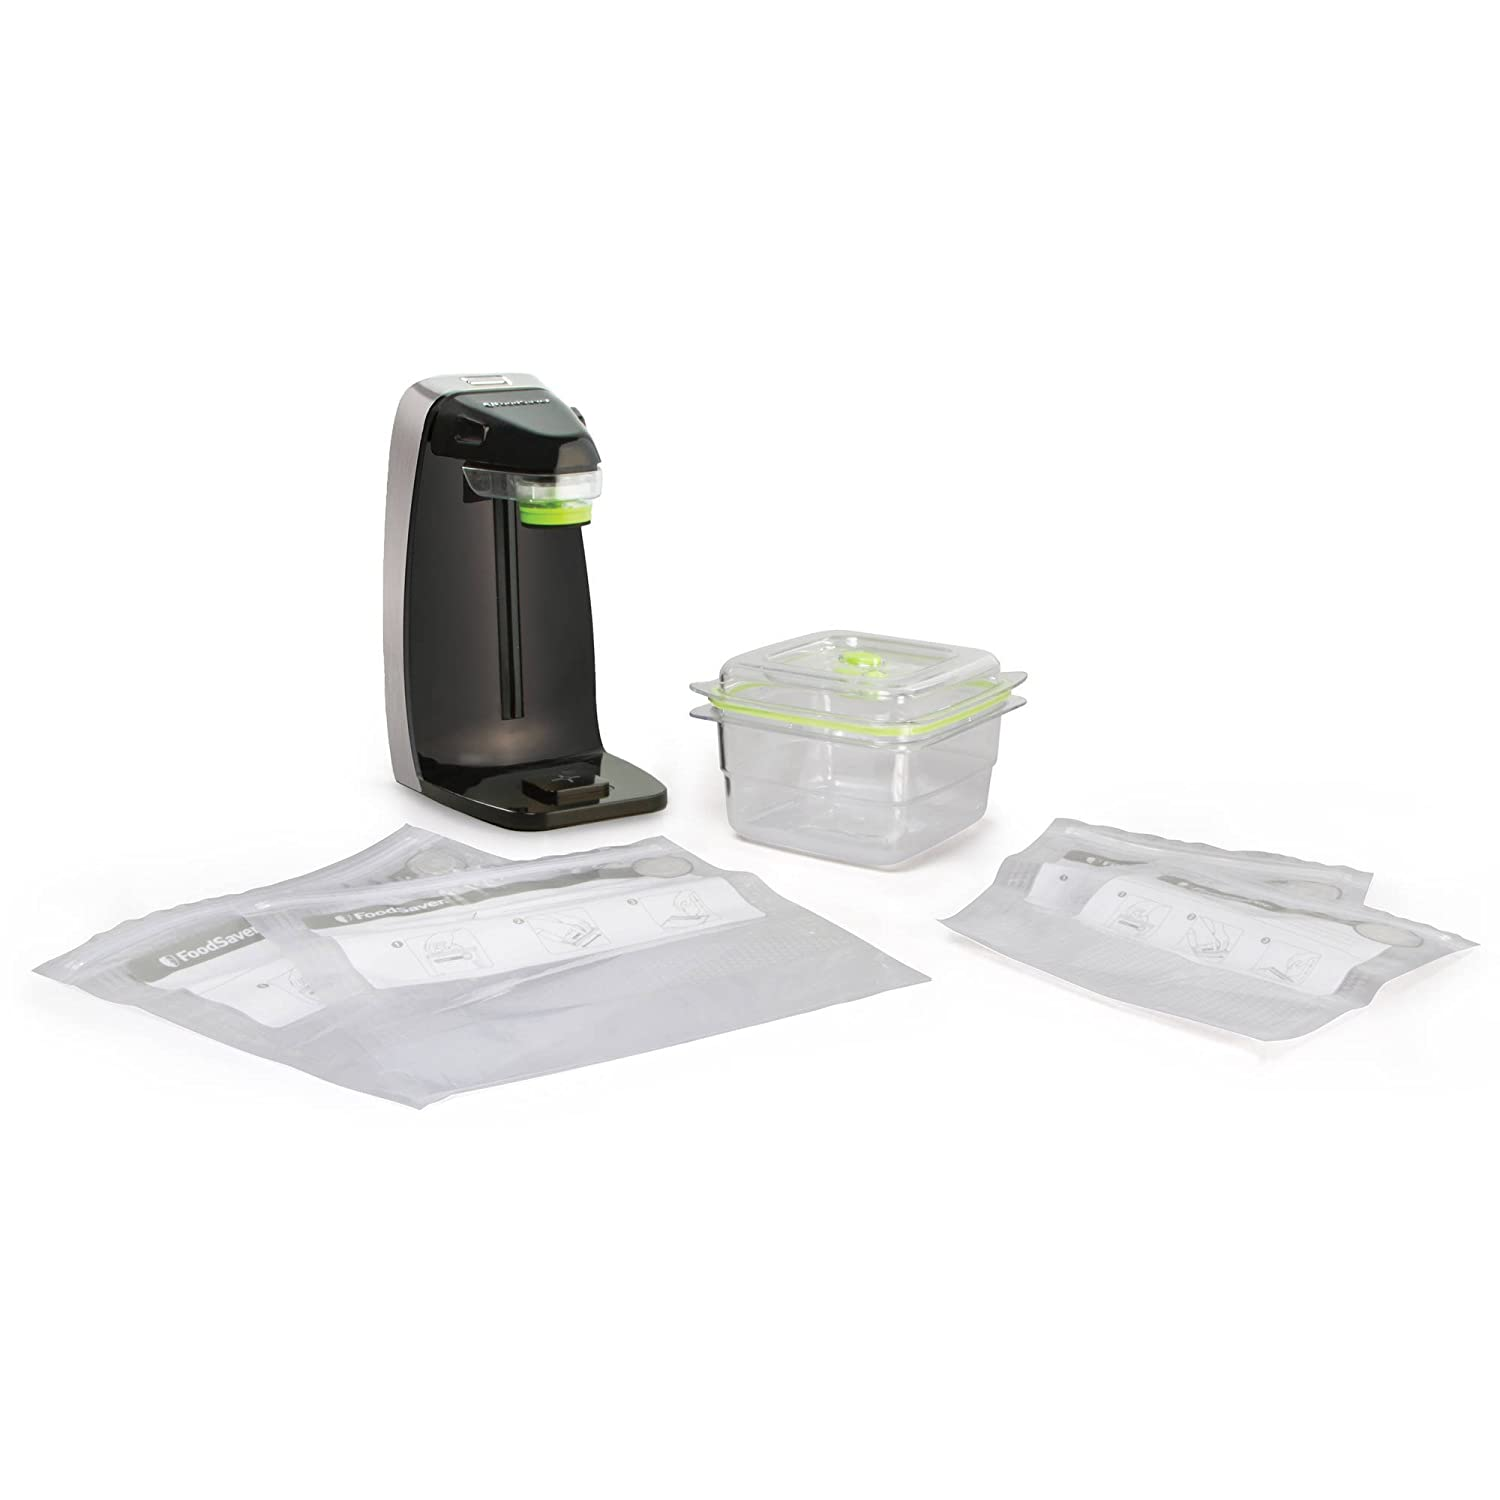 FoodSaver Fresh System Appliance Bundle, FM1160-000